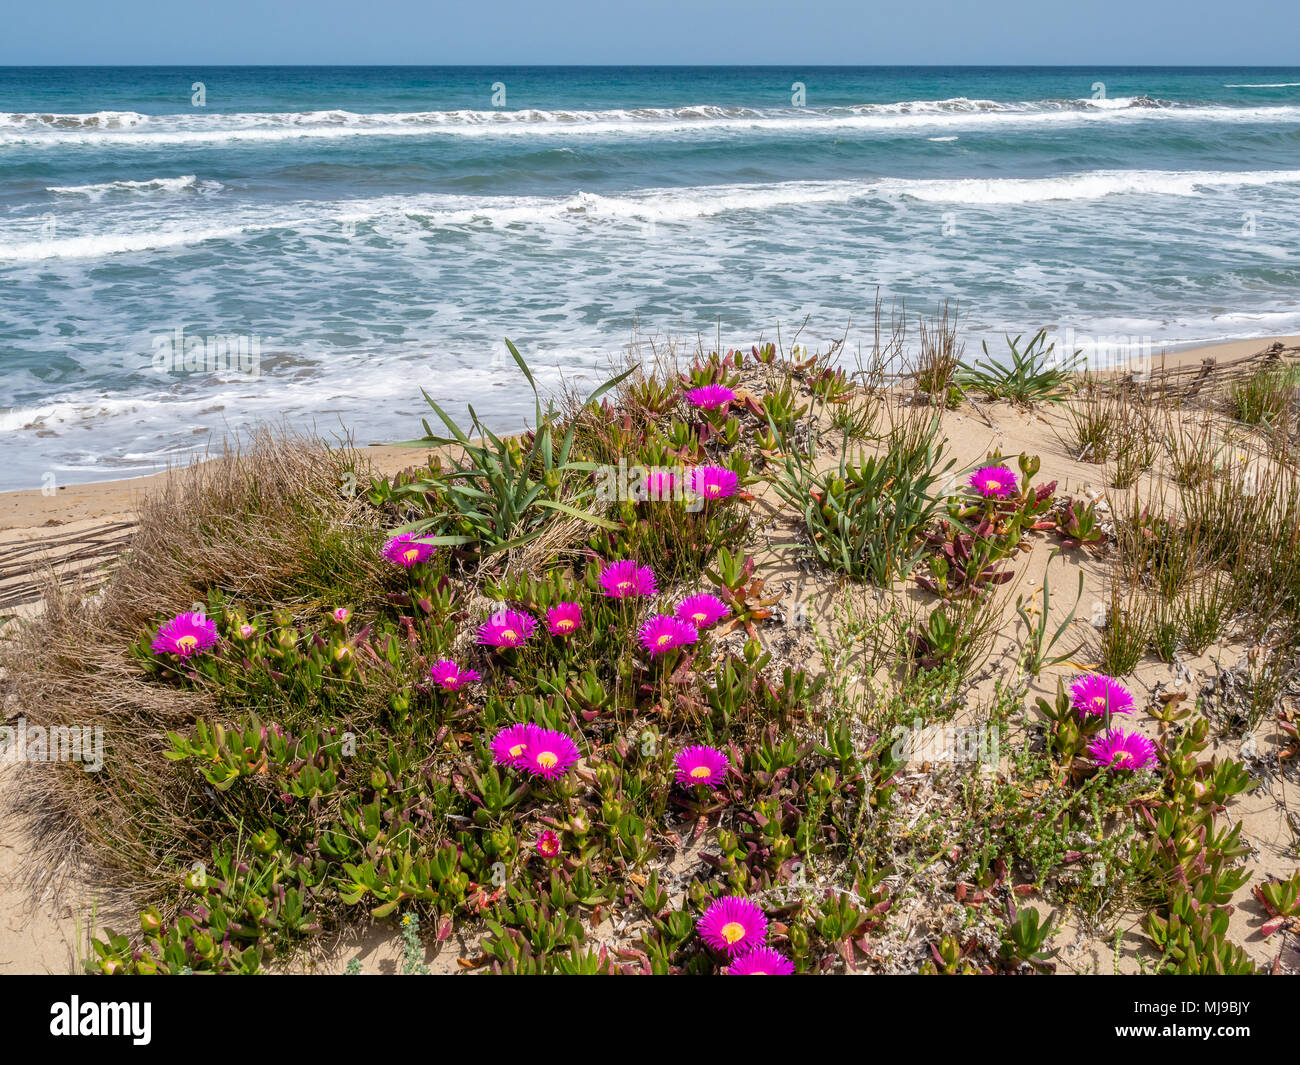 Plants growing in sand dunes above the beach in northwest Sardinia - Stock Image